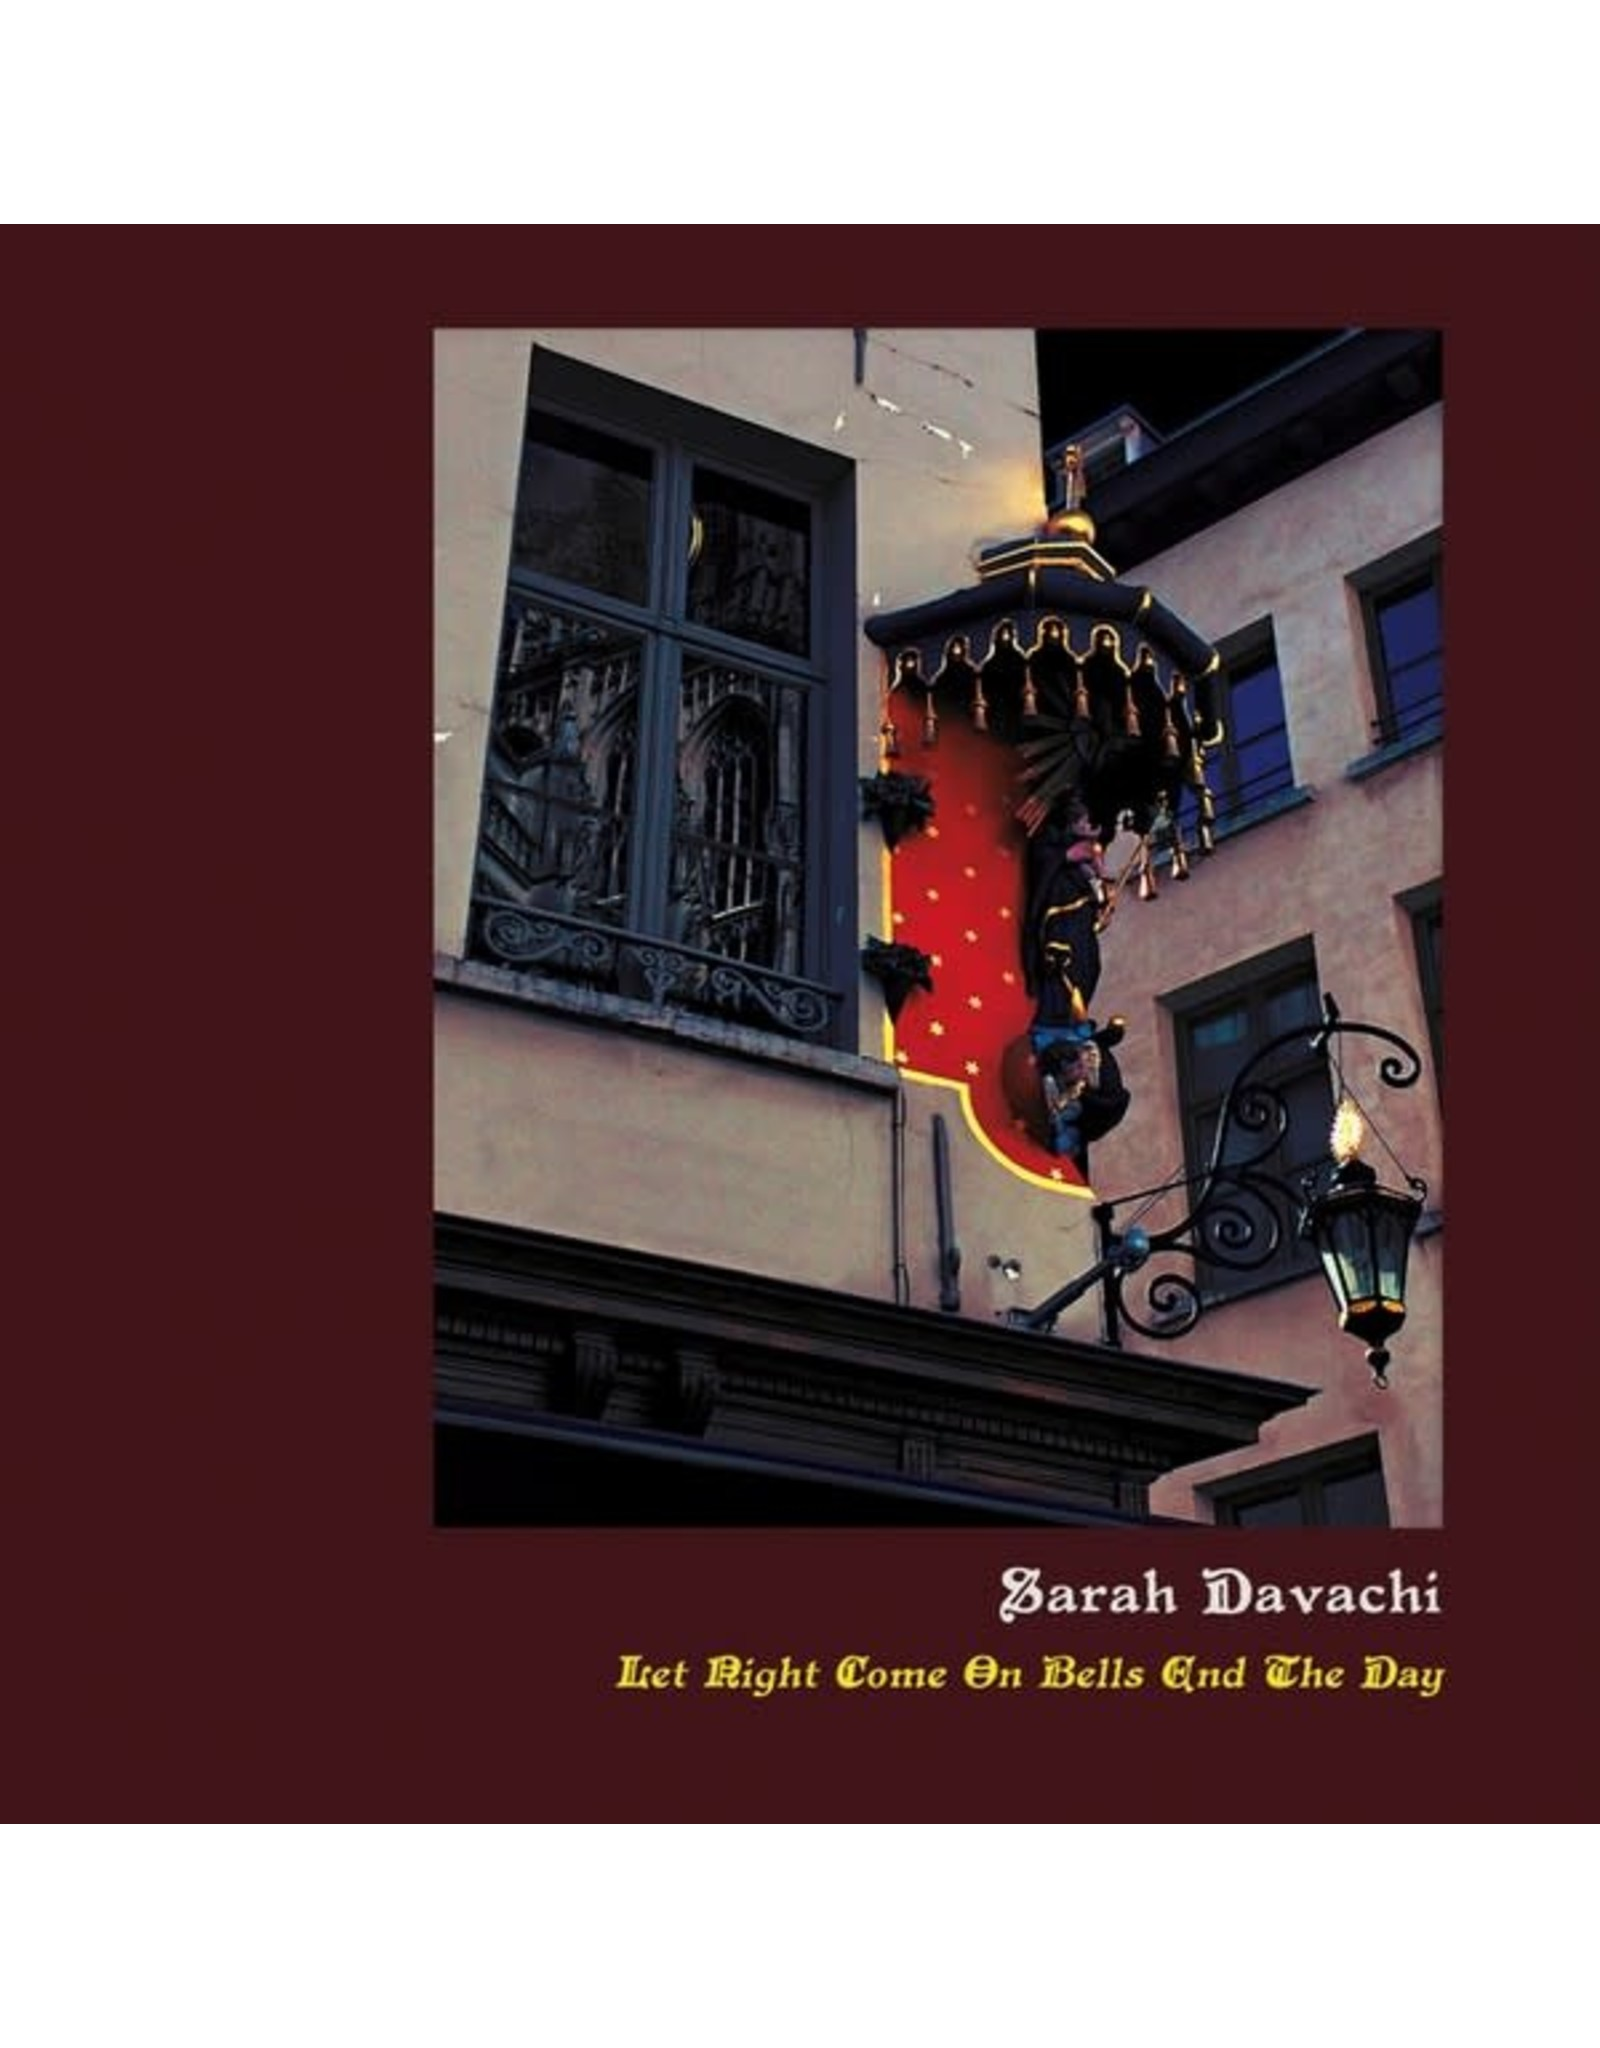 New Vinyl Sarah Davachi - Let Night Come On Bells End The Day LP+CD